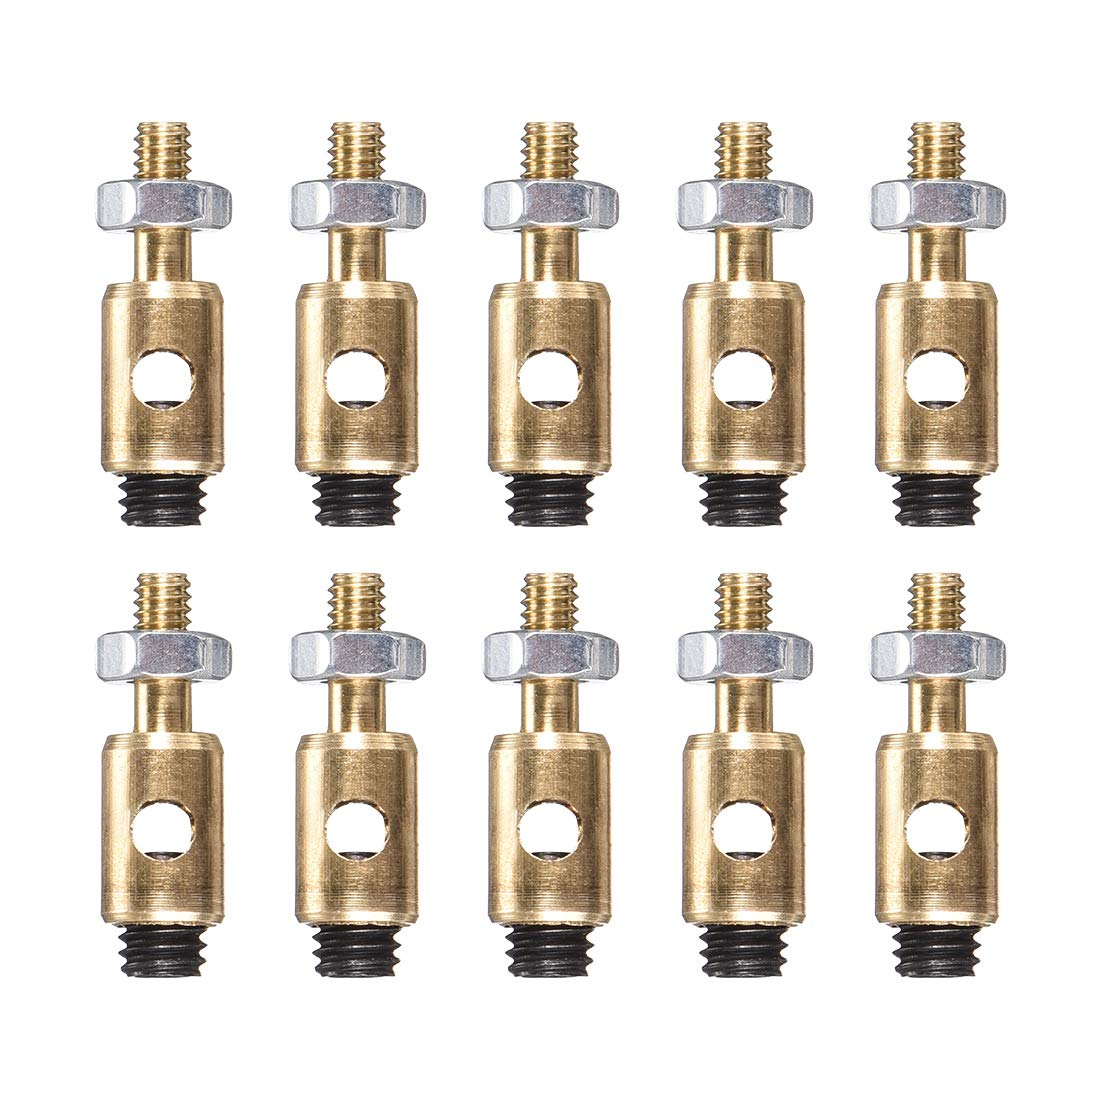 uxcell Linkage Stoppers Connecting Servo Arm,Push Rod for RC Airplane,D4x2.5mm 10pcs